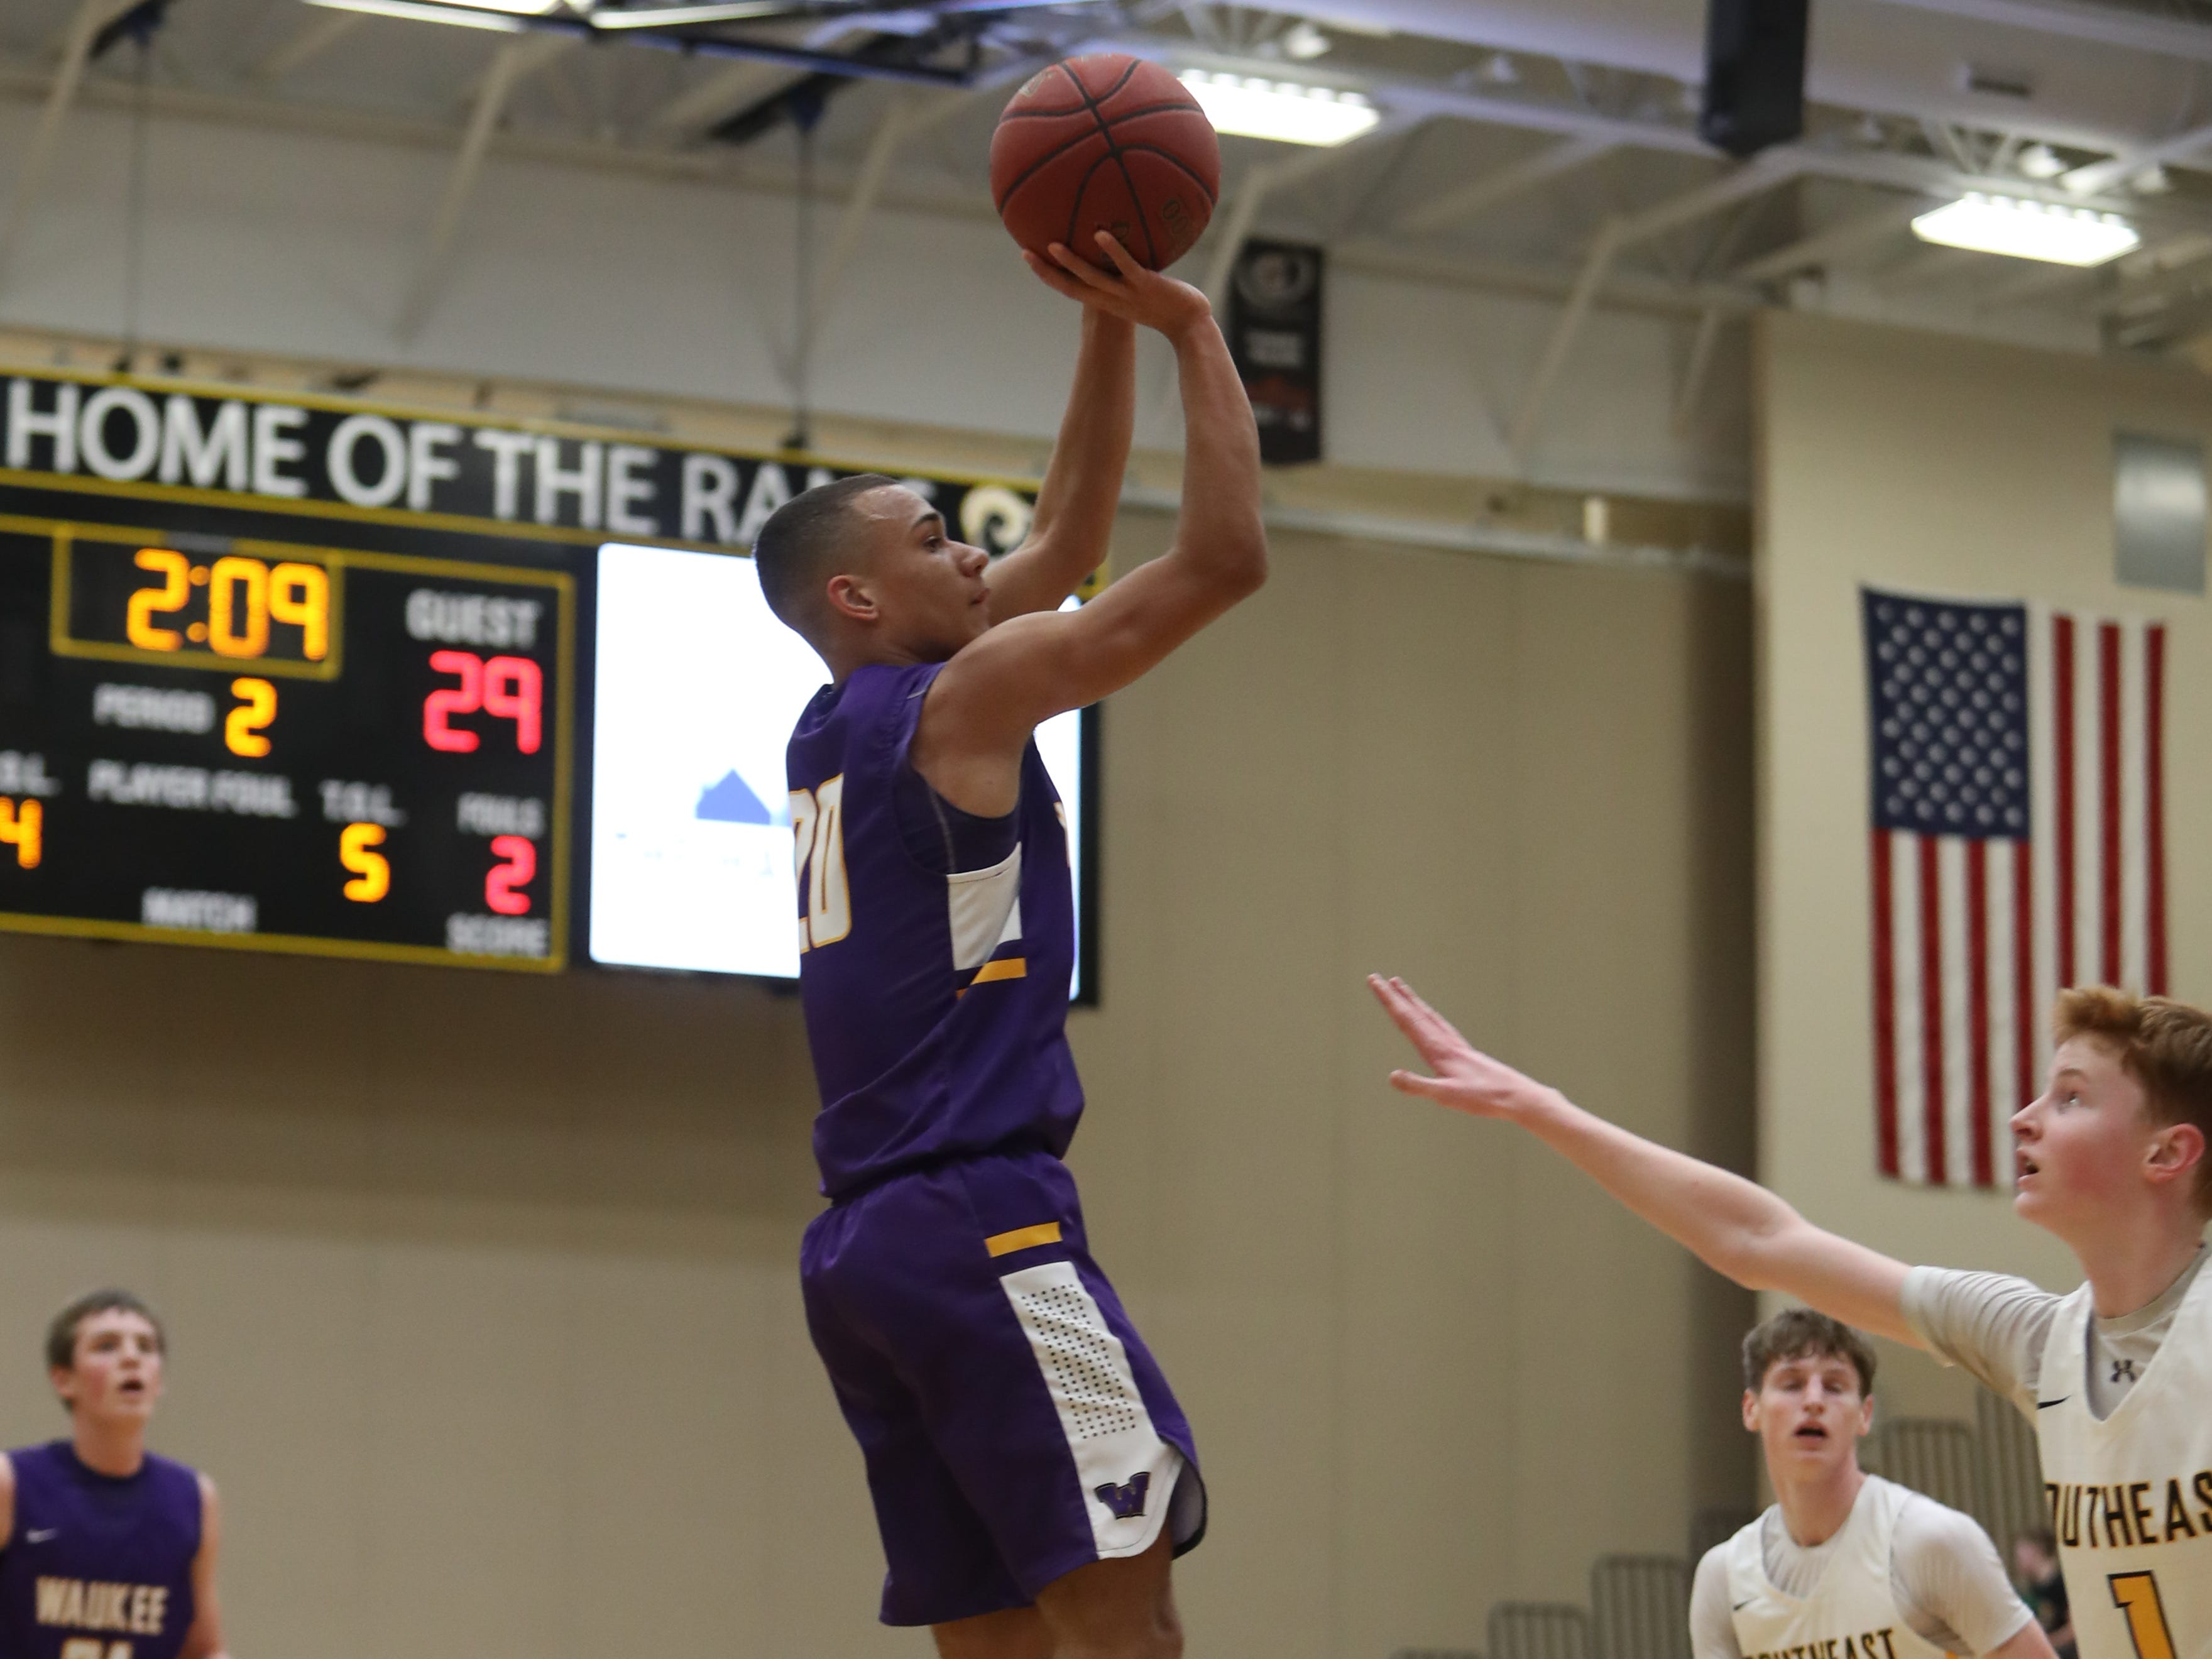 Waukee Warriors' Dante Jenkins (20) shoots against the Southeast Polk Rams during a game on Feb. 1, 2019 at Southeast Polk High School. Waukee won the game 65 to 48.